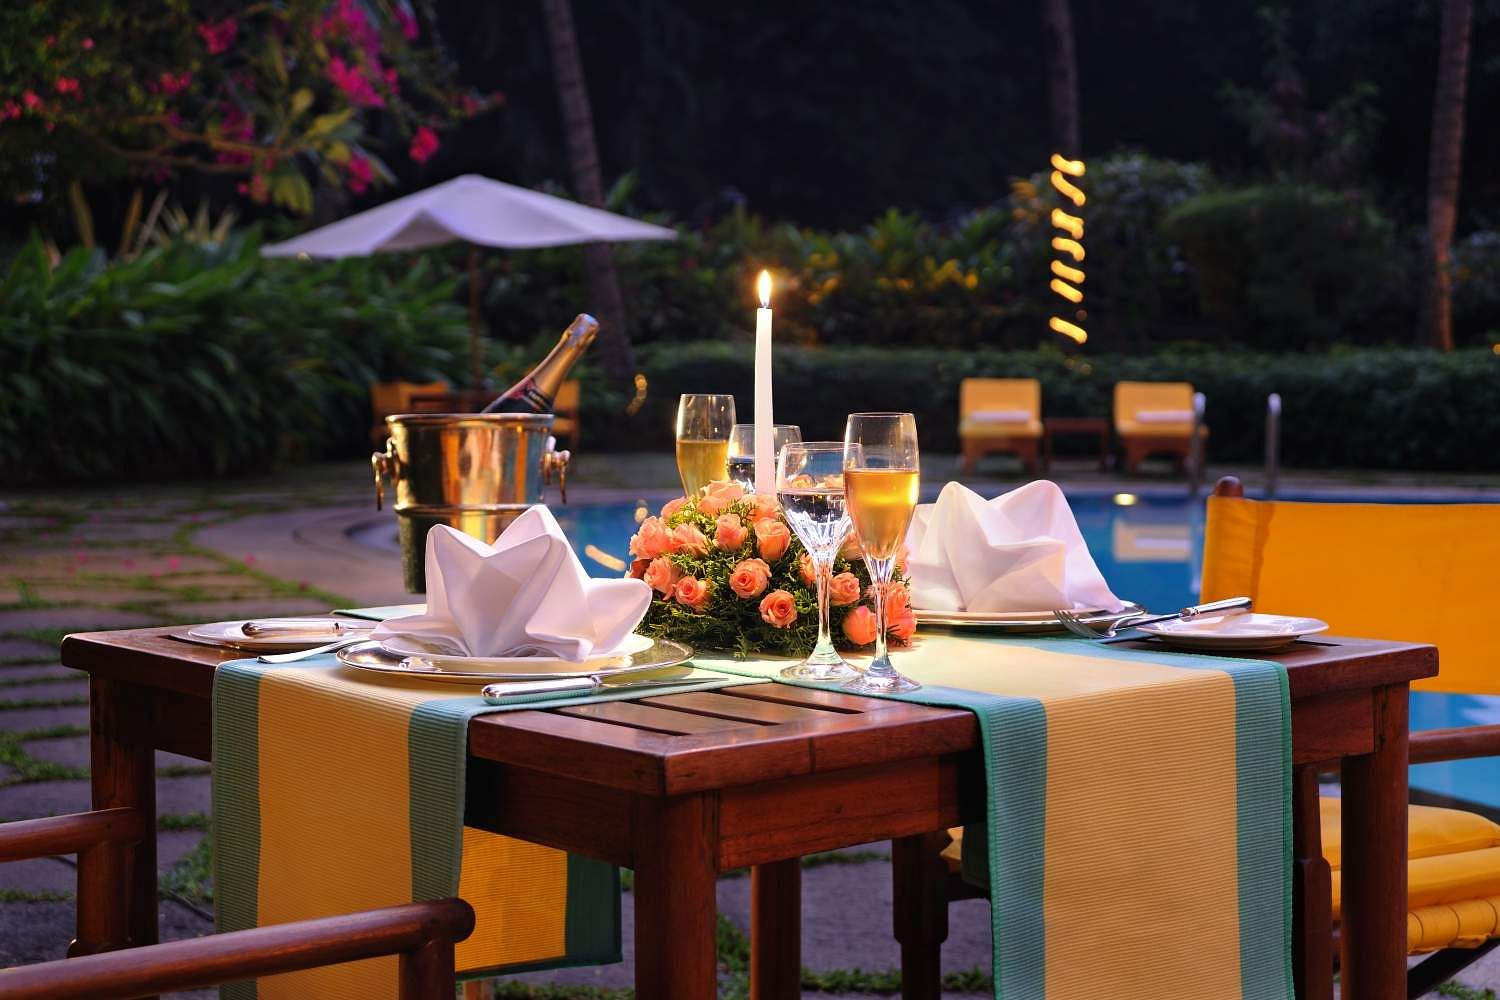 The Oberoi candlelight dinner